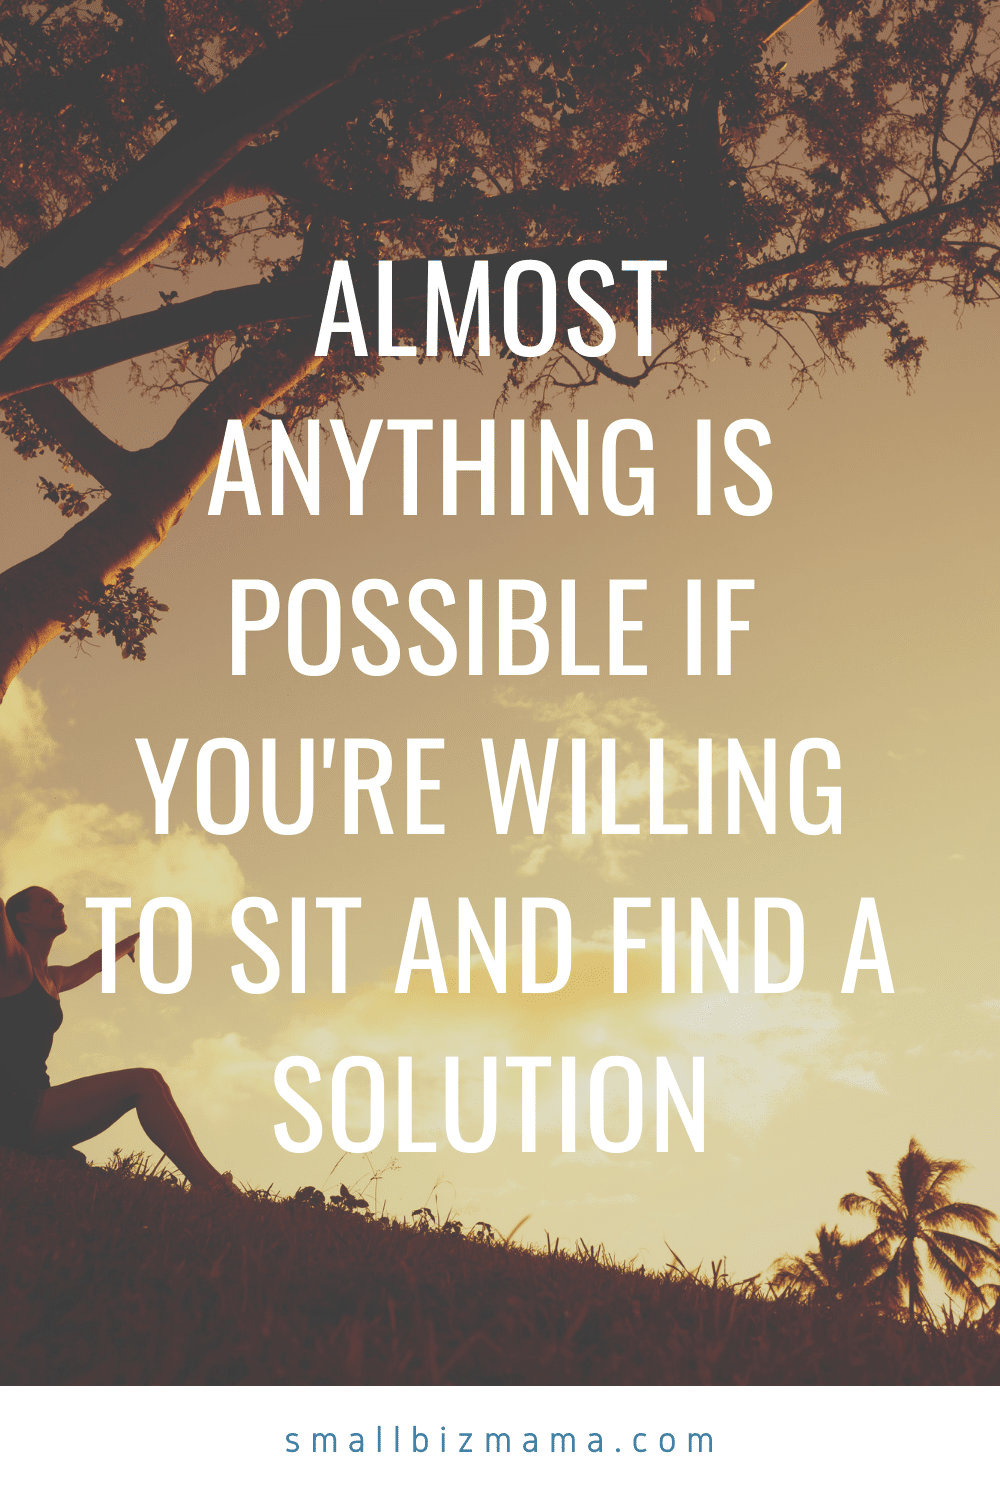 Almost anything is possible if you're willing to sit and find a solution